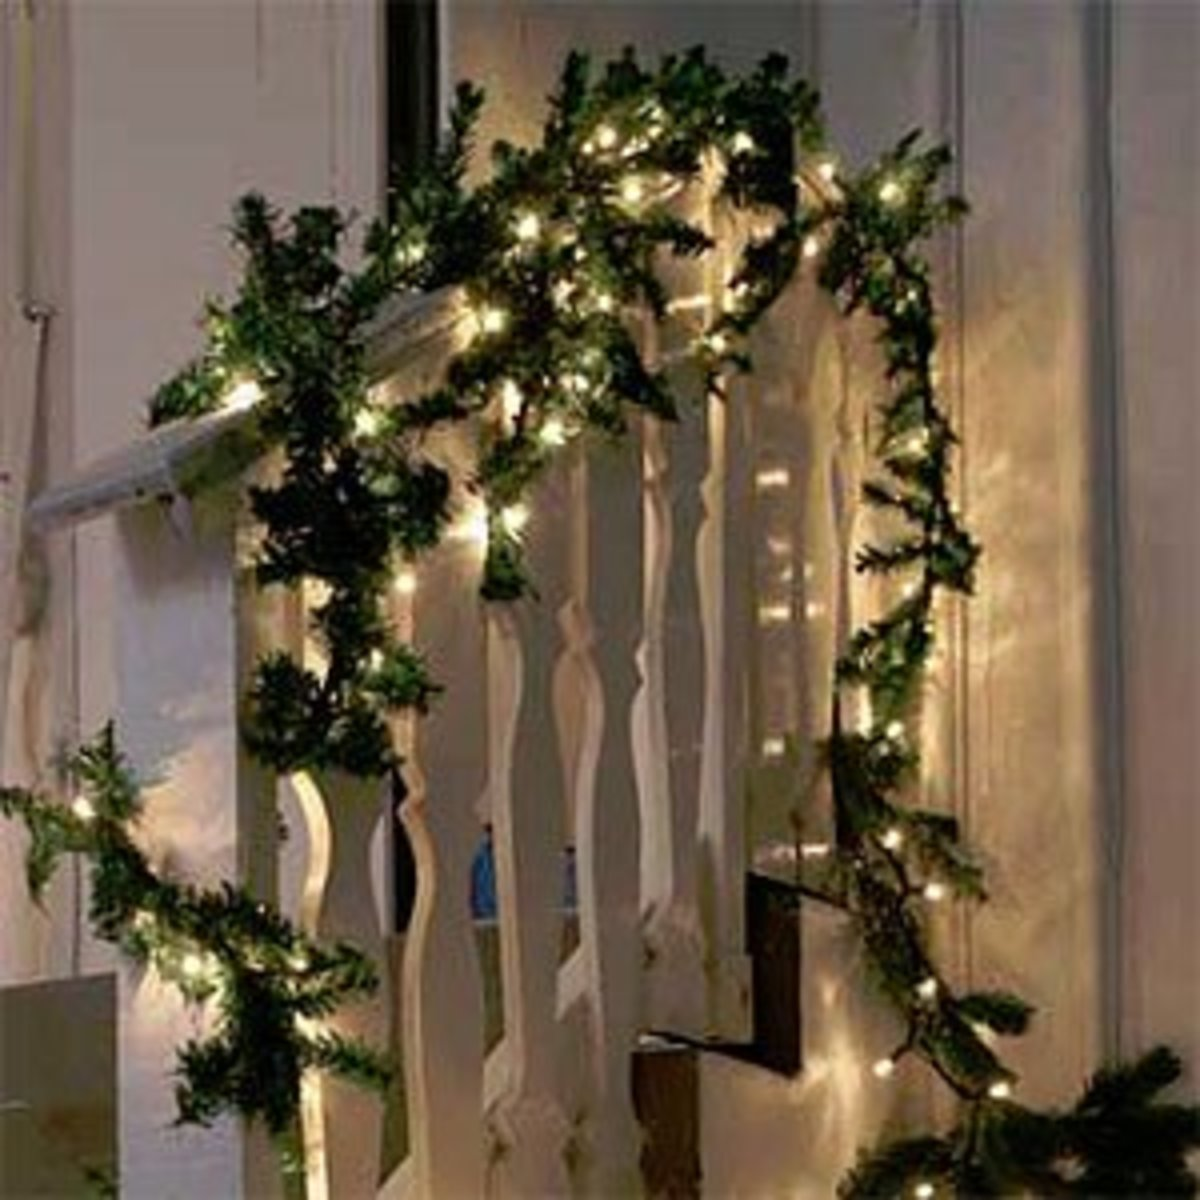 Christmas Garlands For Stairs With Lights : Garland christmas lights  hubpages